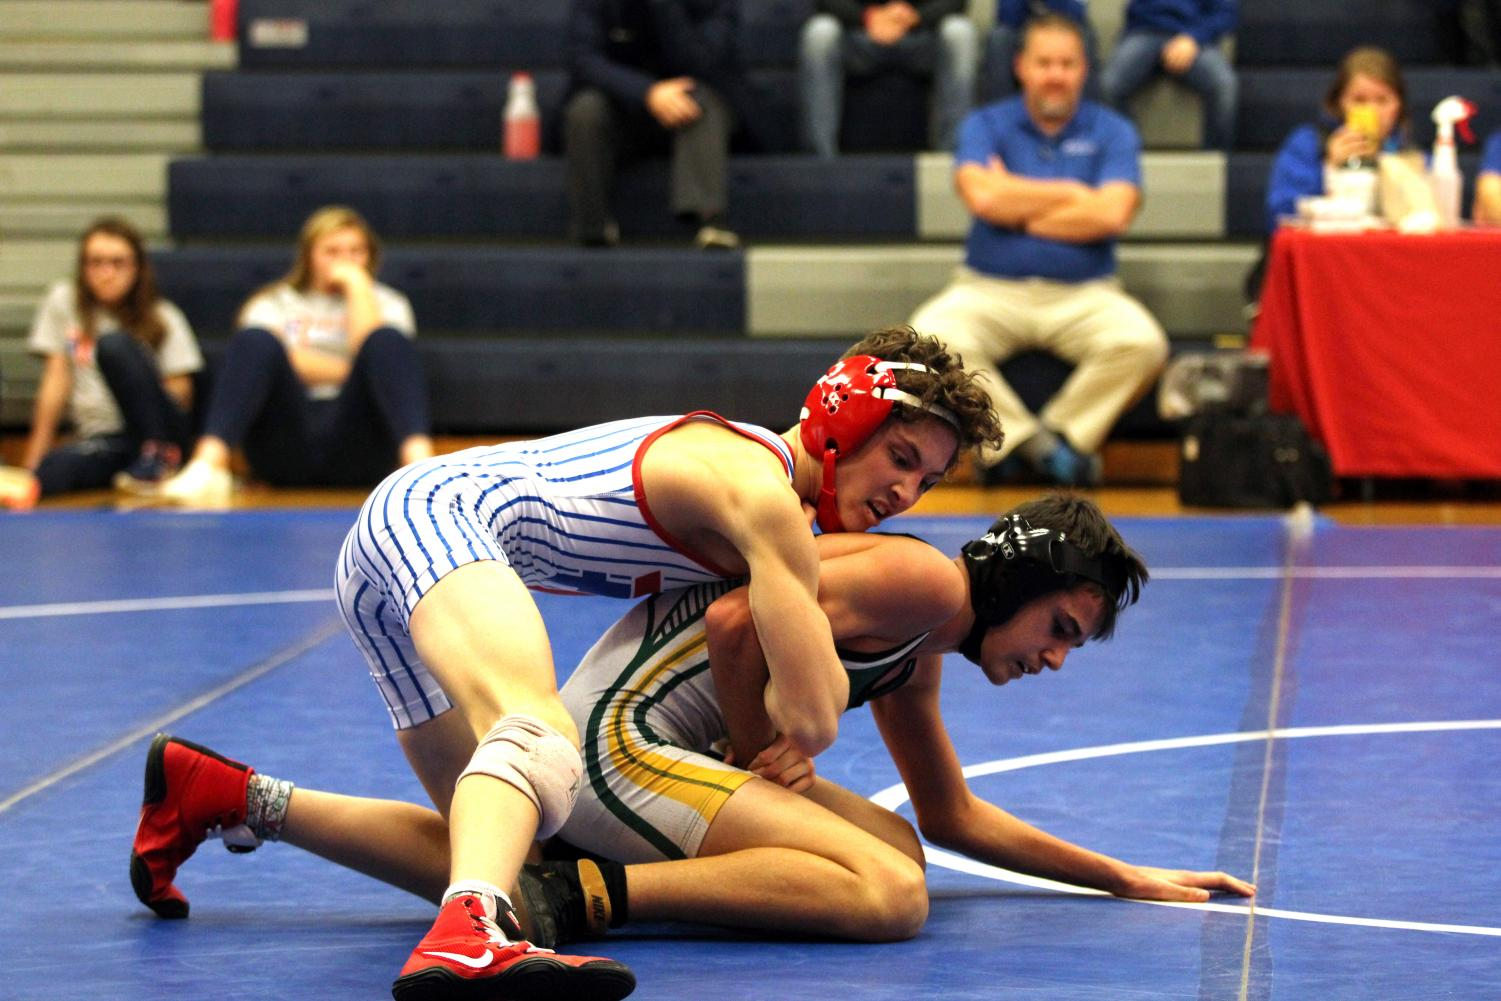 State-ranked wrestlers commence